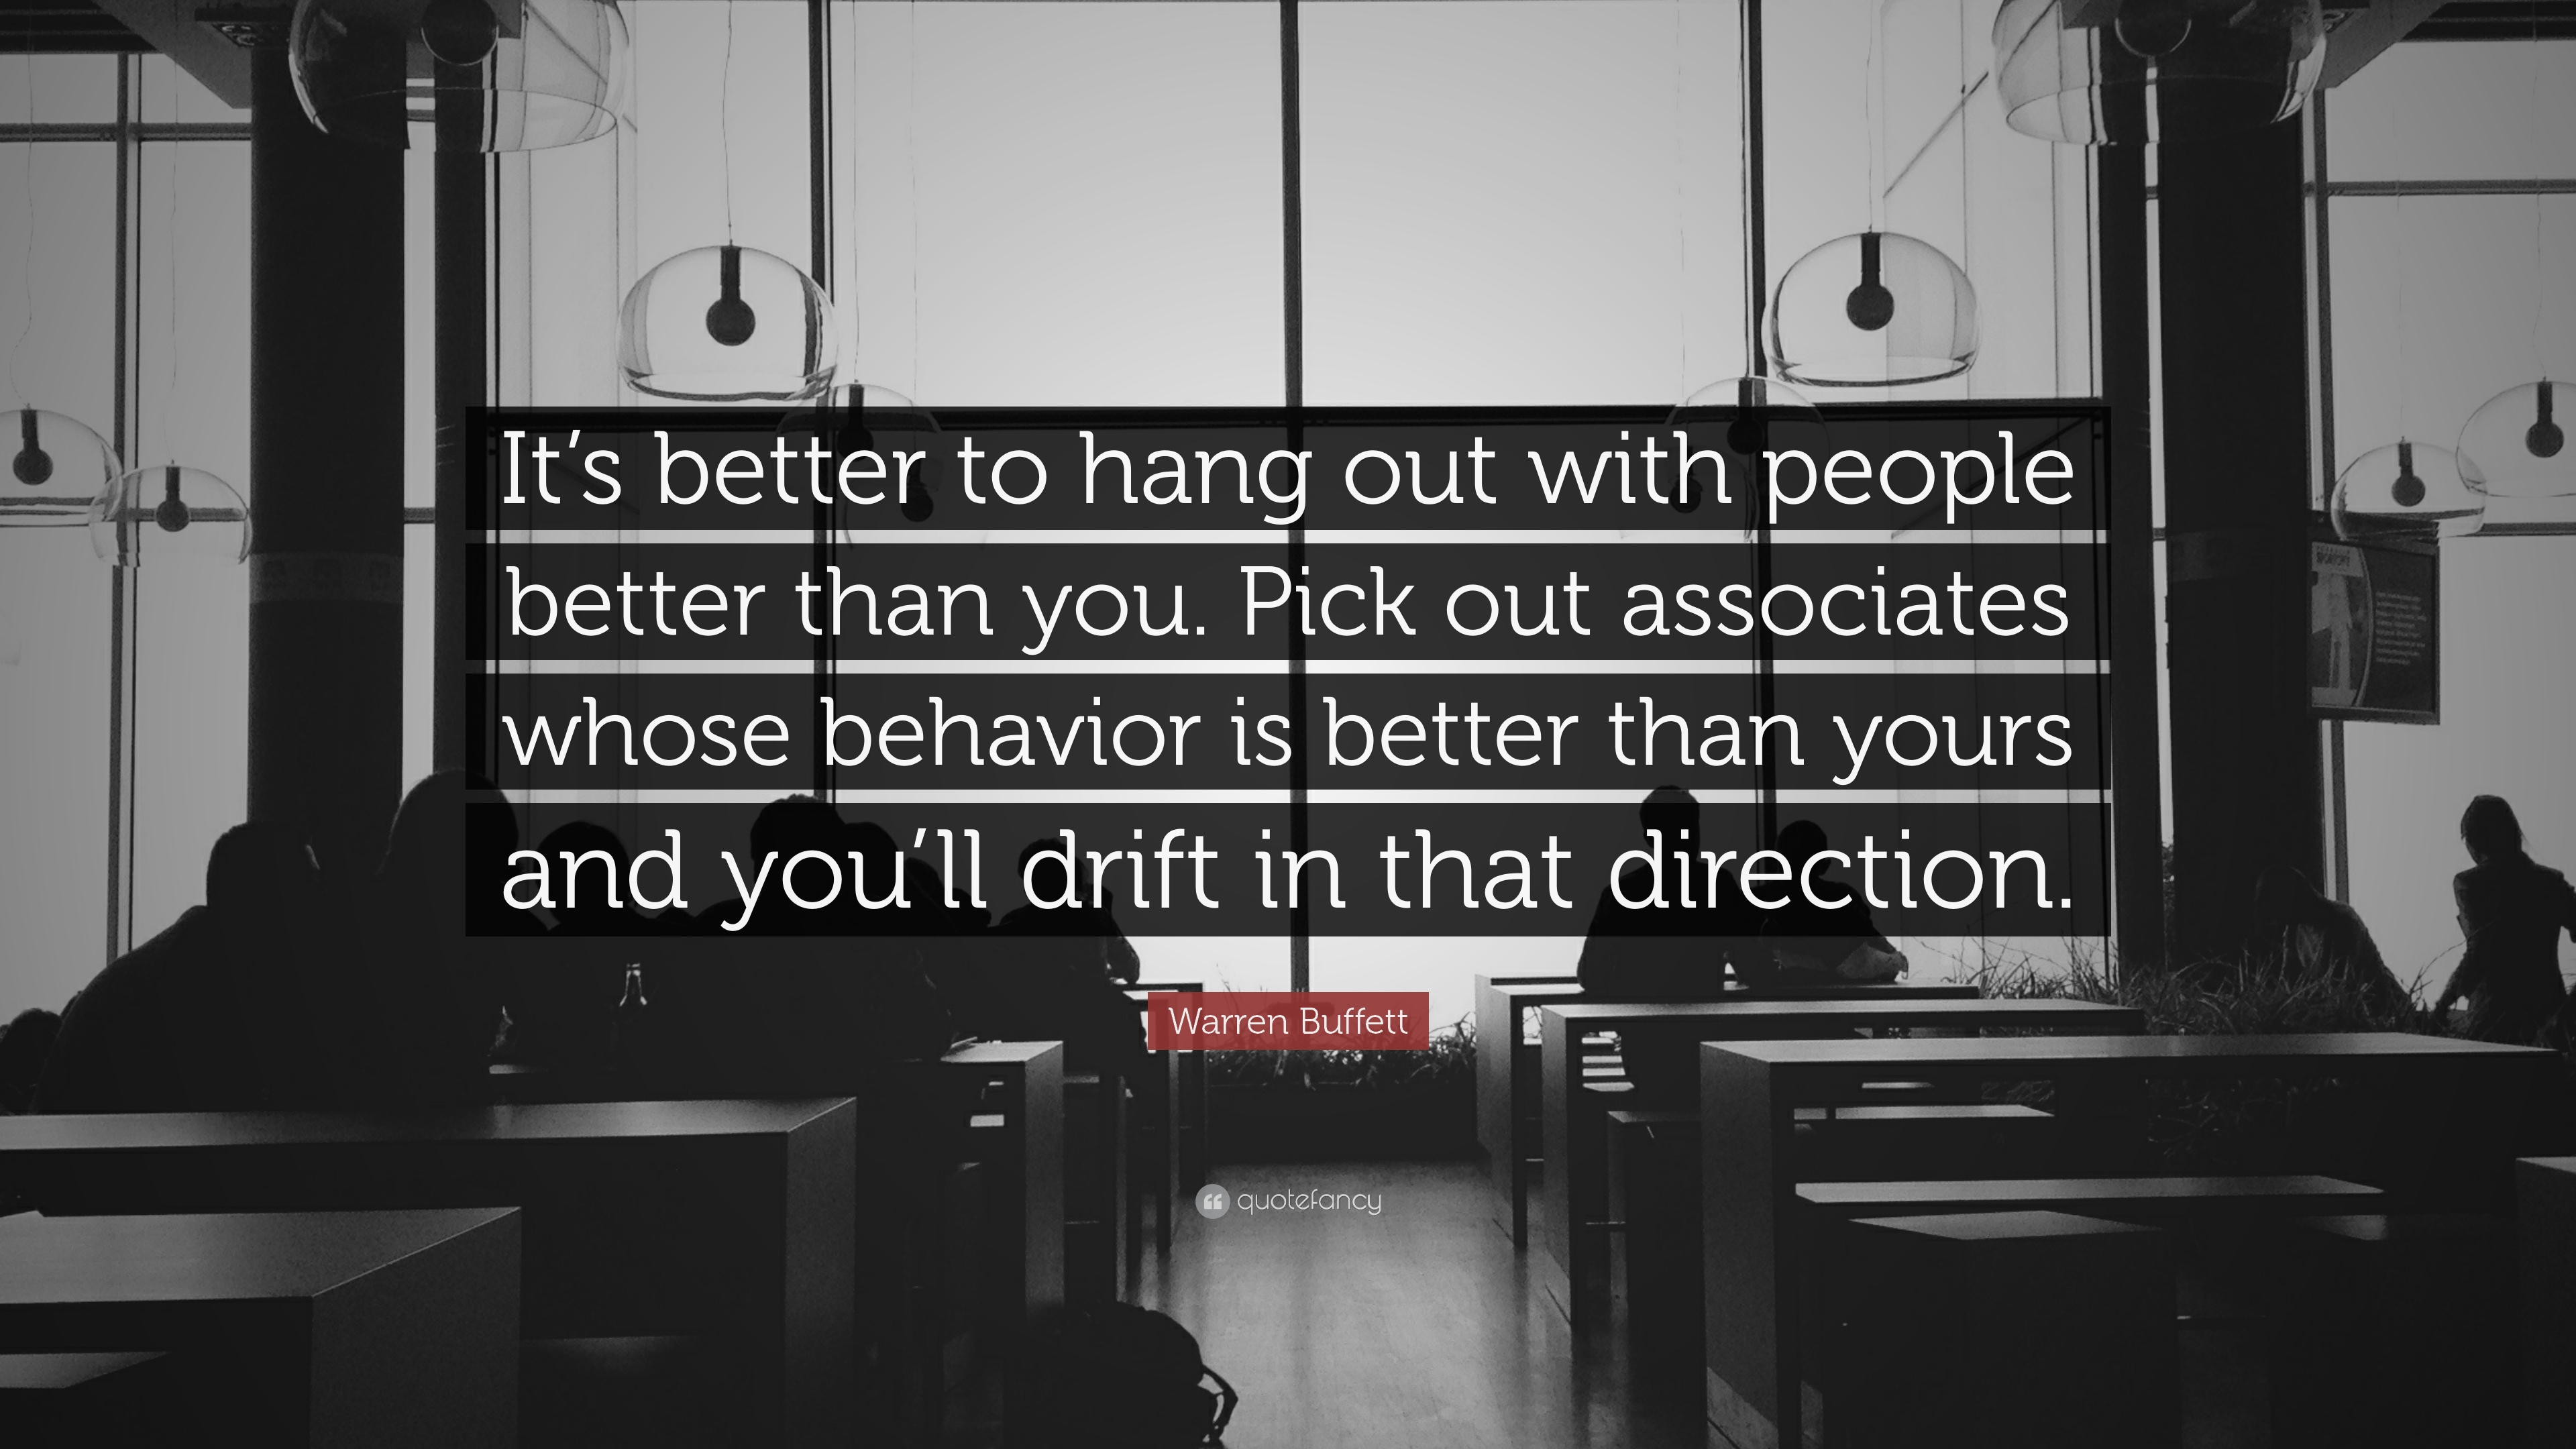 It is better to hang out with people better than you. Pick out associates whose behavior is better than yours and you'll drift in that direction.